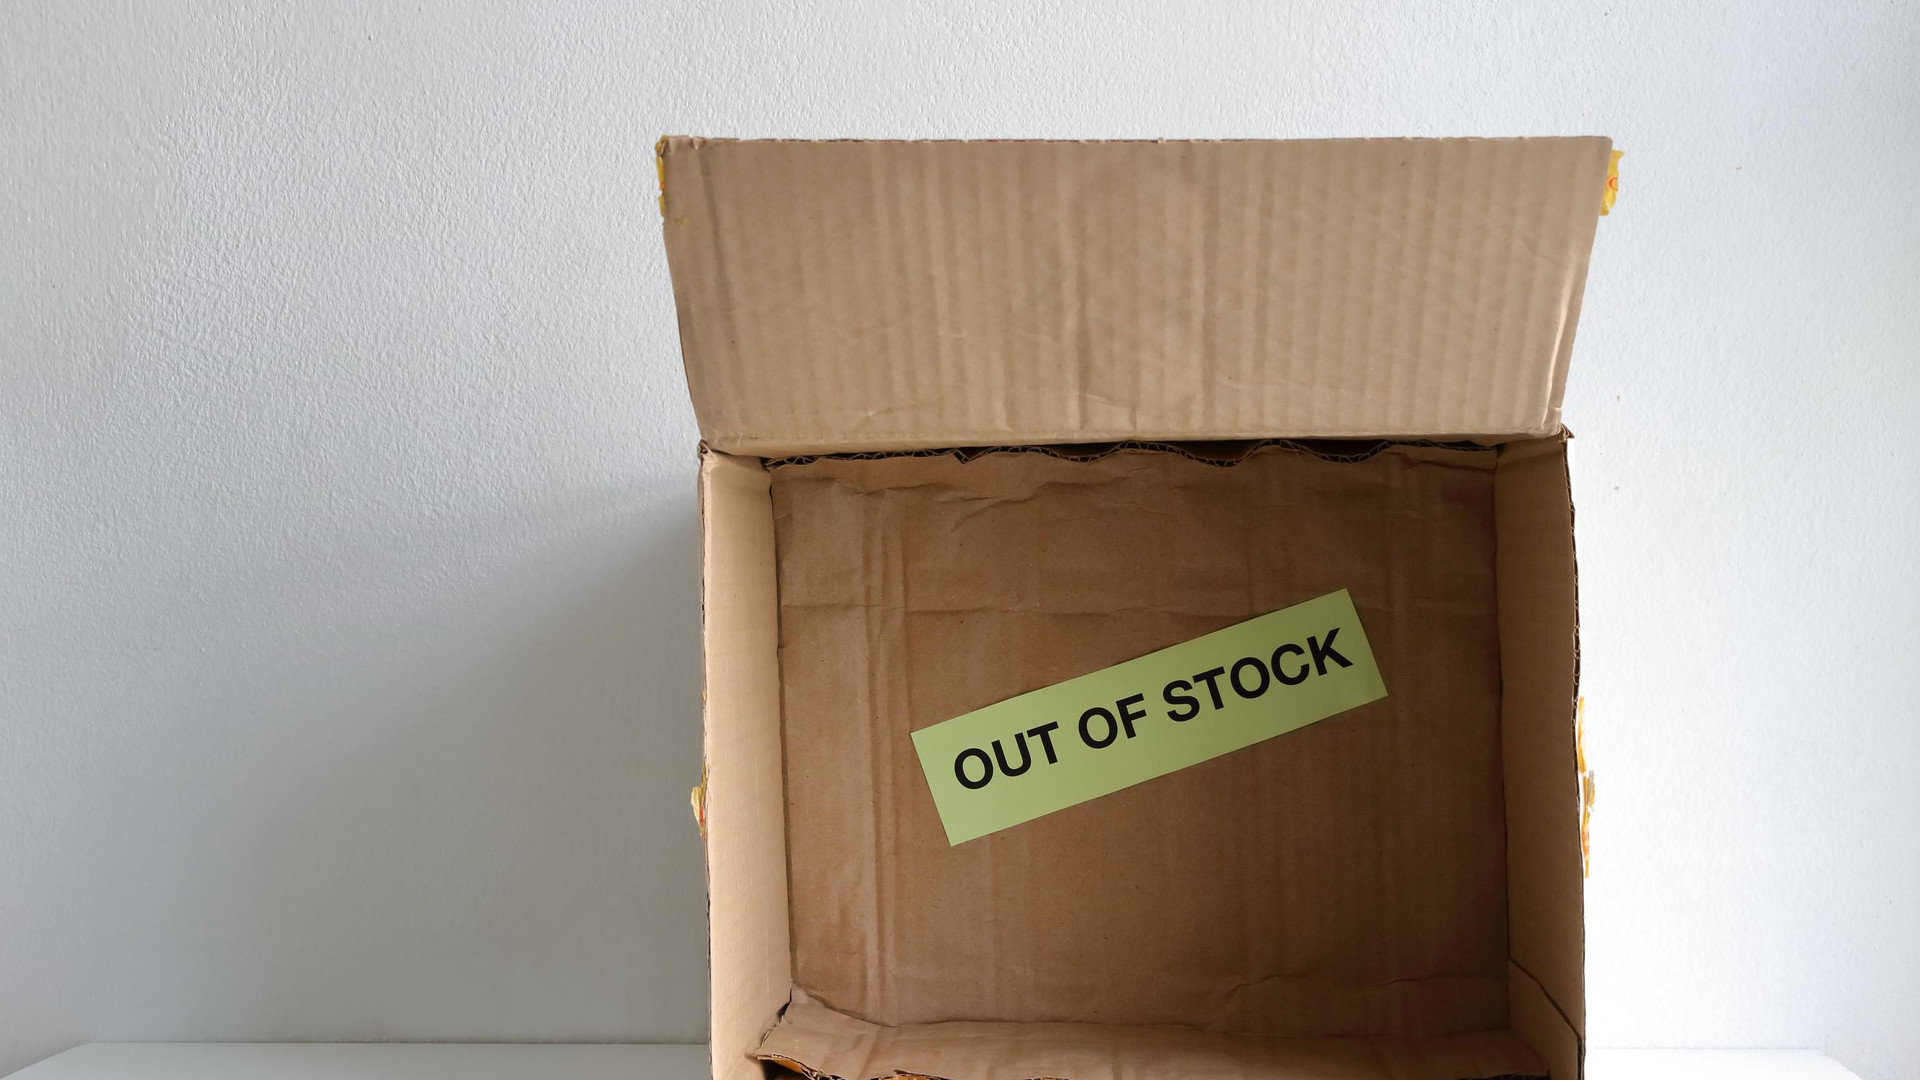 Supply Chain Disruptions Are Pushing Up Inflation, But The Stock Market May Not Care